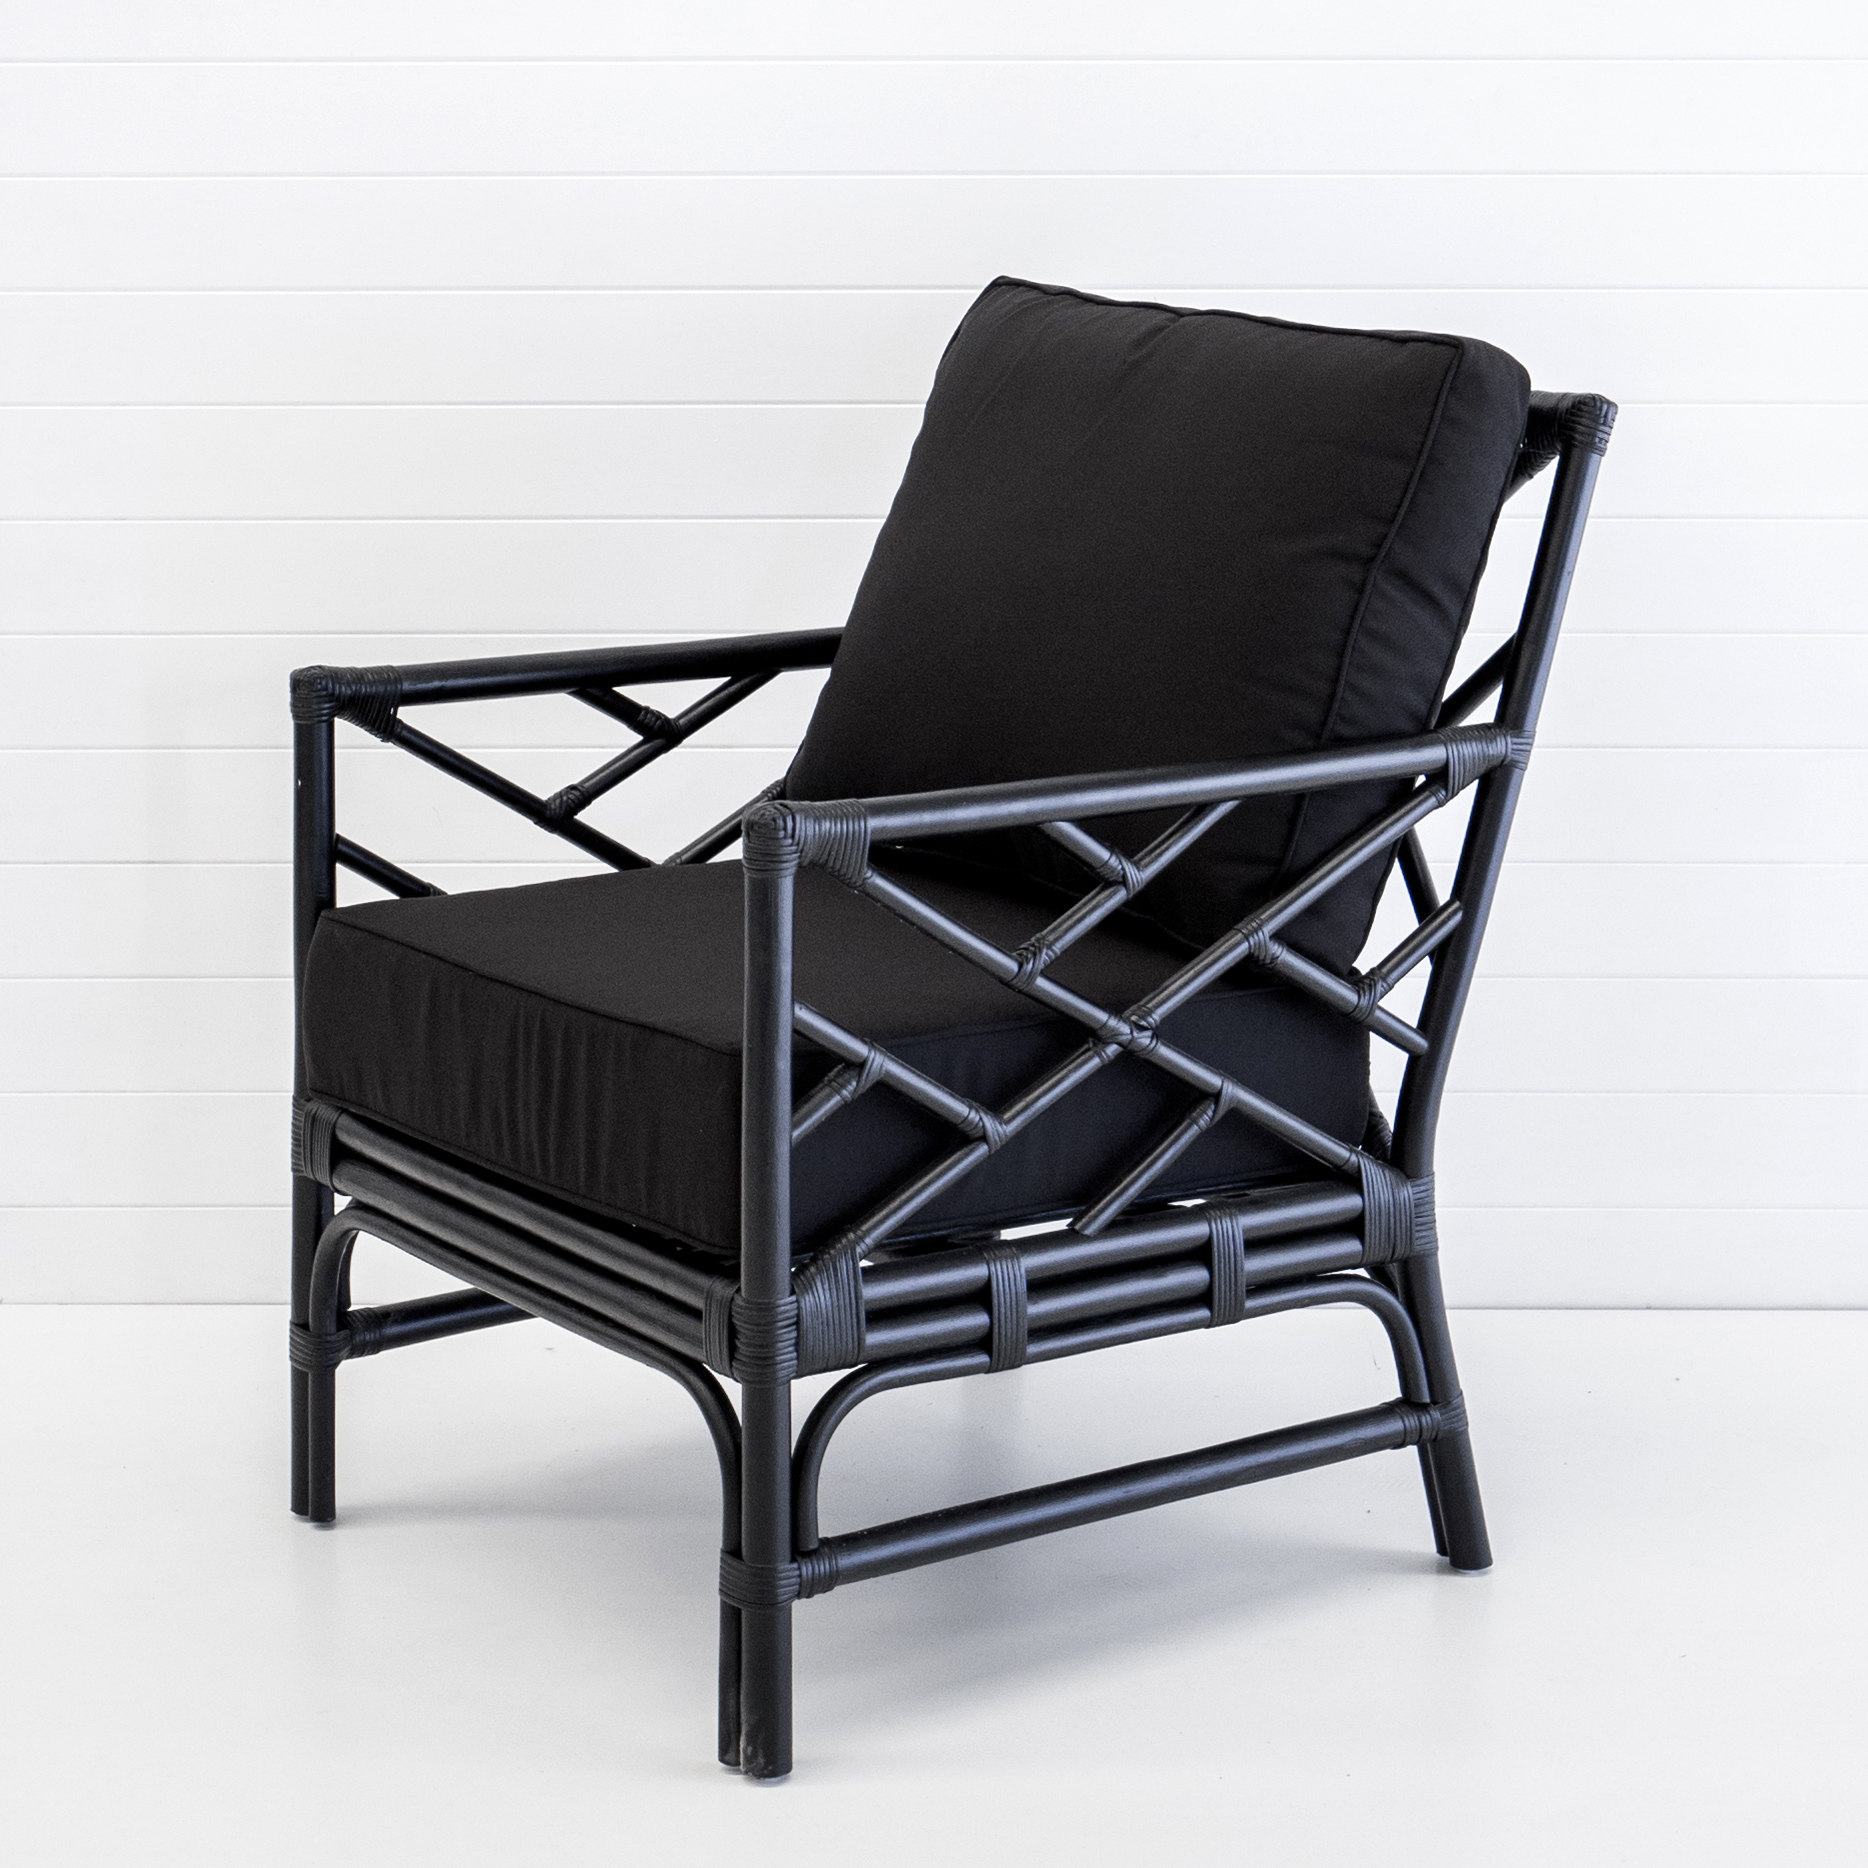 Hamptons black armchair with black cushions